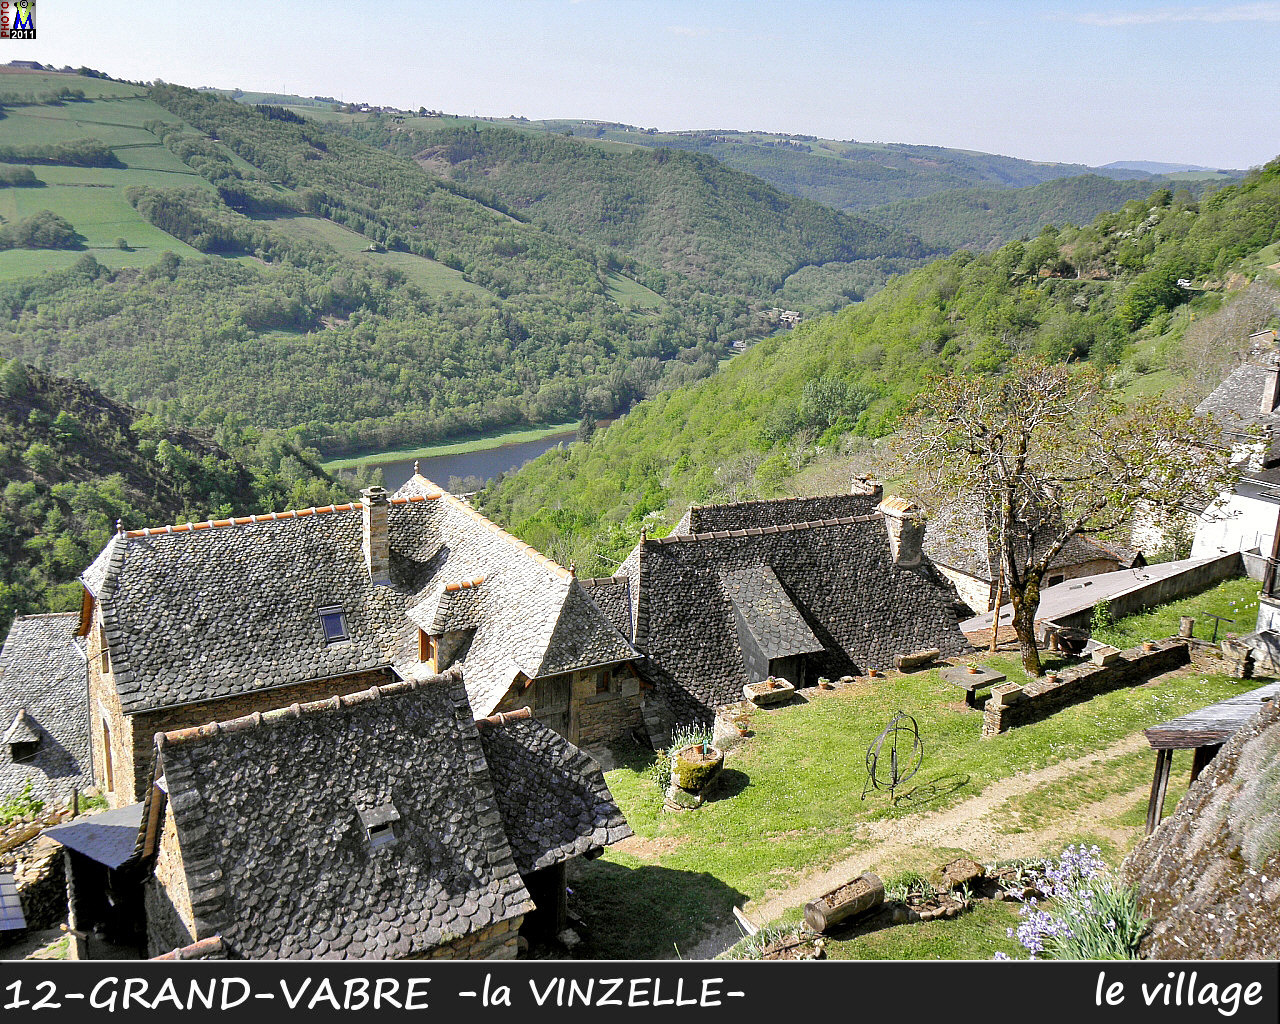 12GRAND-VABRE-Vinzelle_village_144.jpg